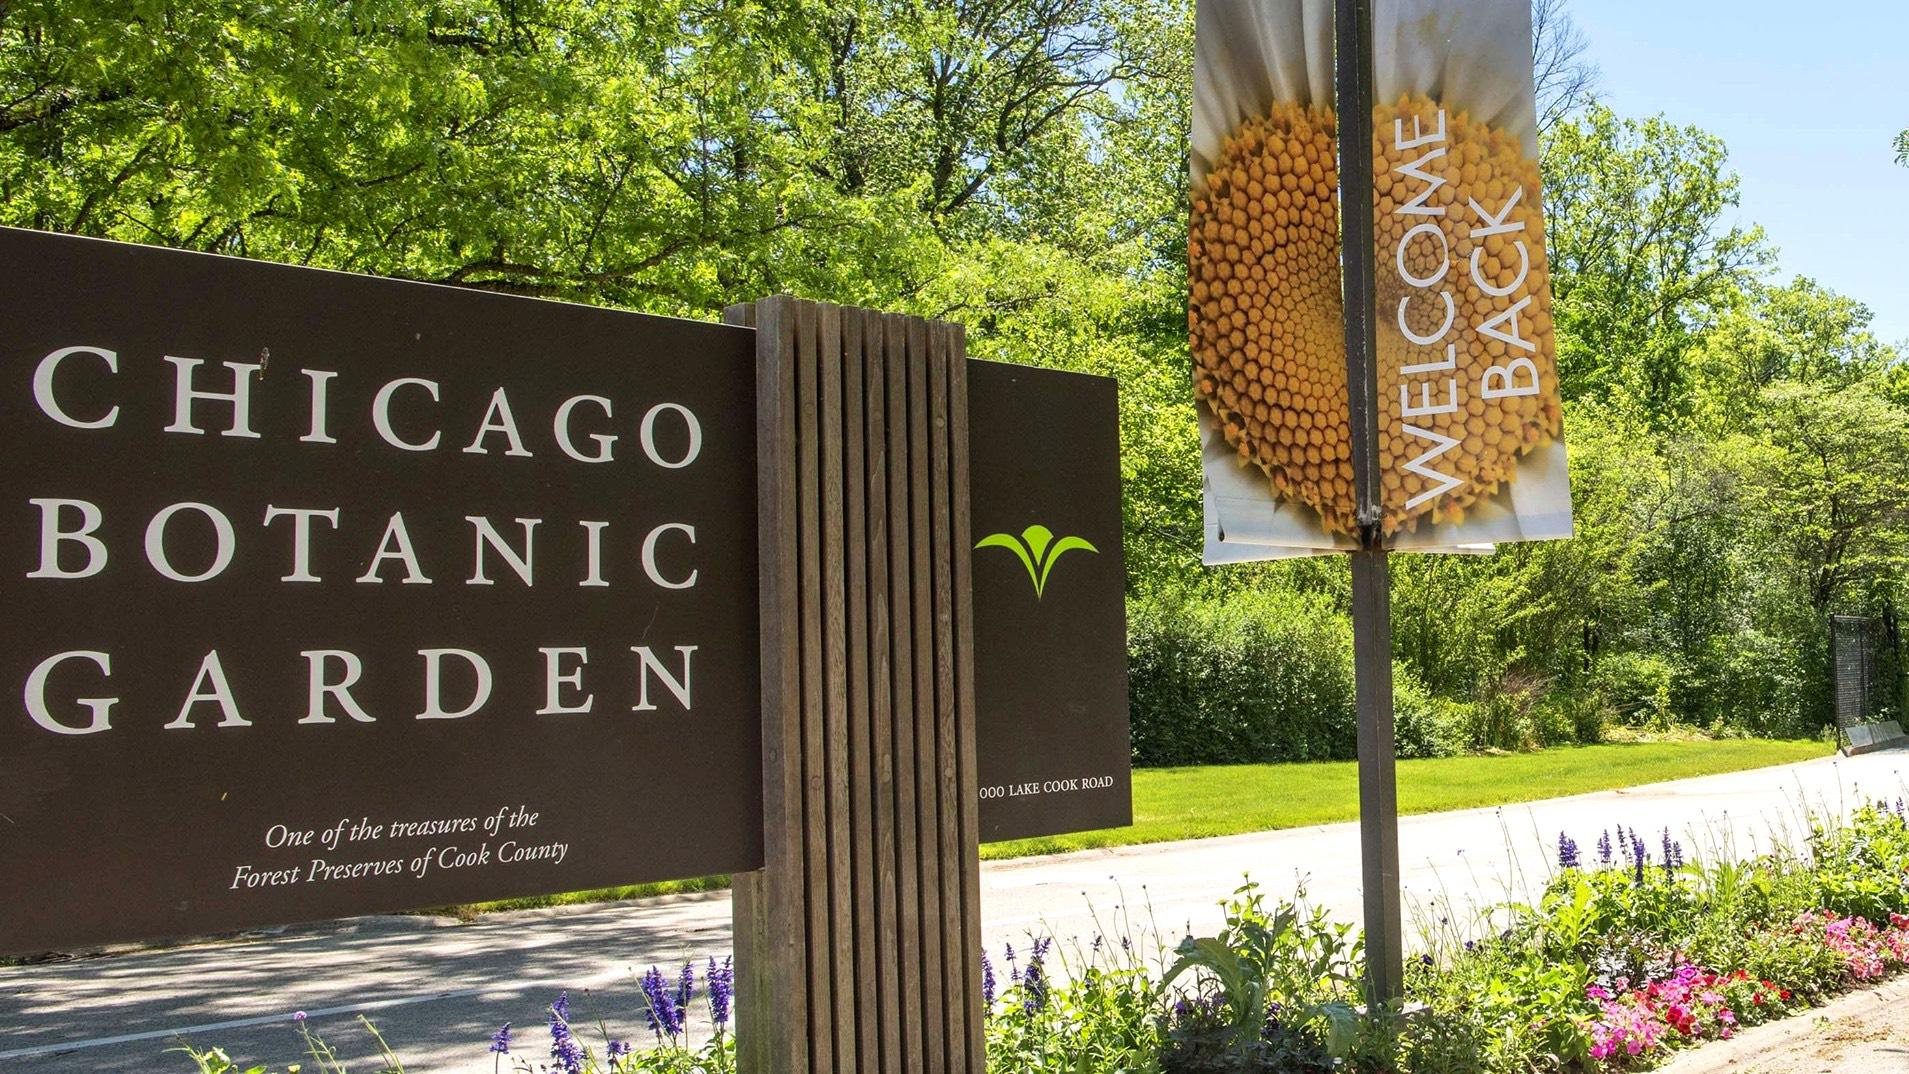 Picturing the Prairie at Chicago Botanic Gardens in Glencoe